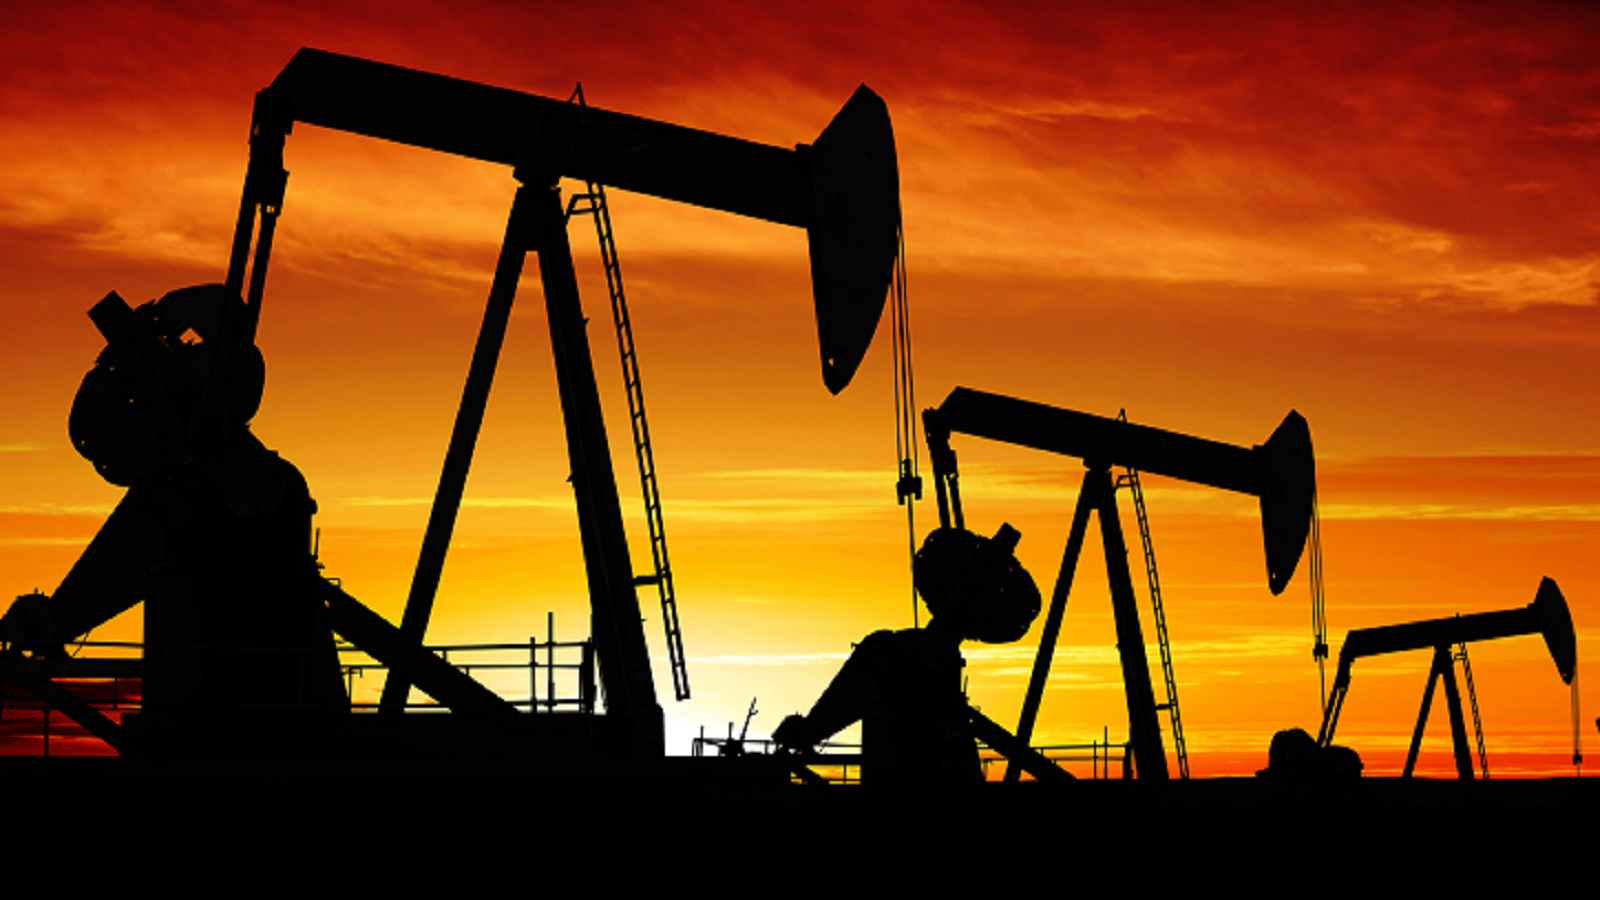 Oil Drilling Site Stock Photo